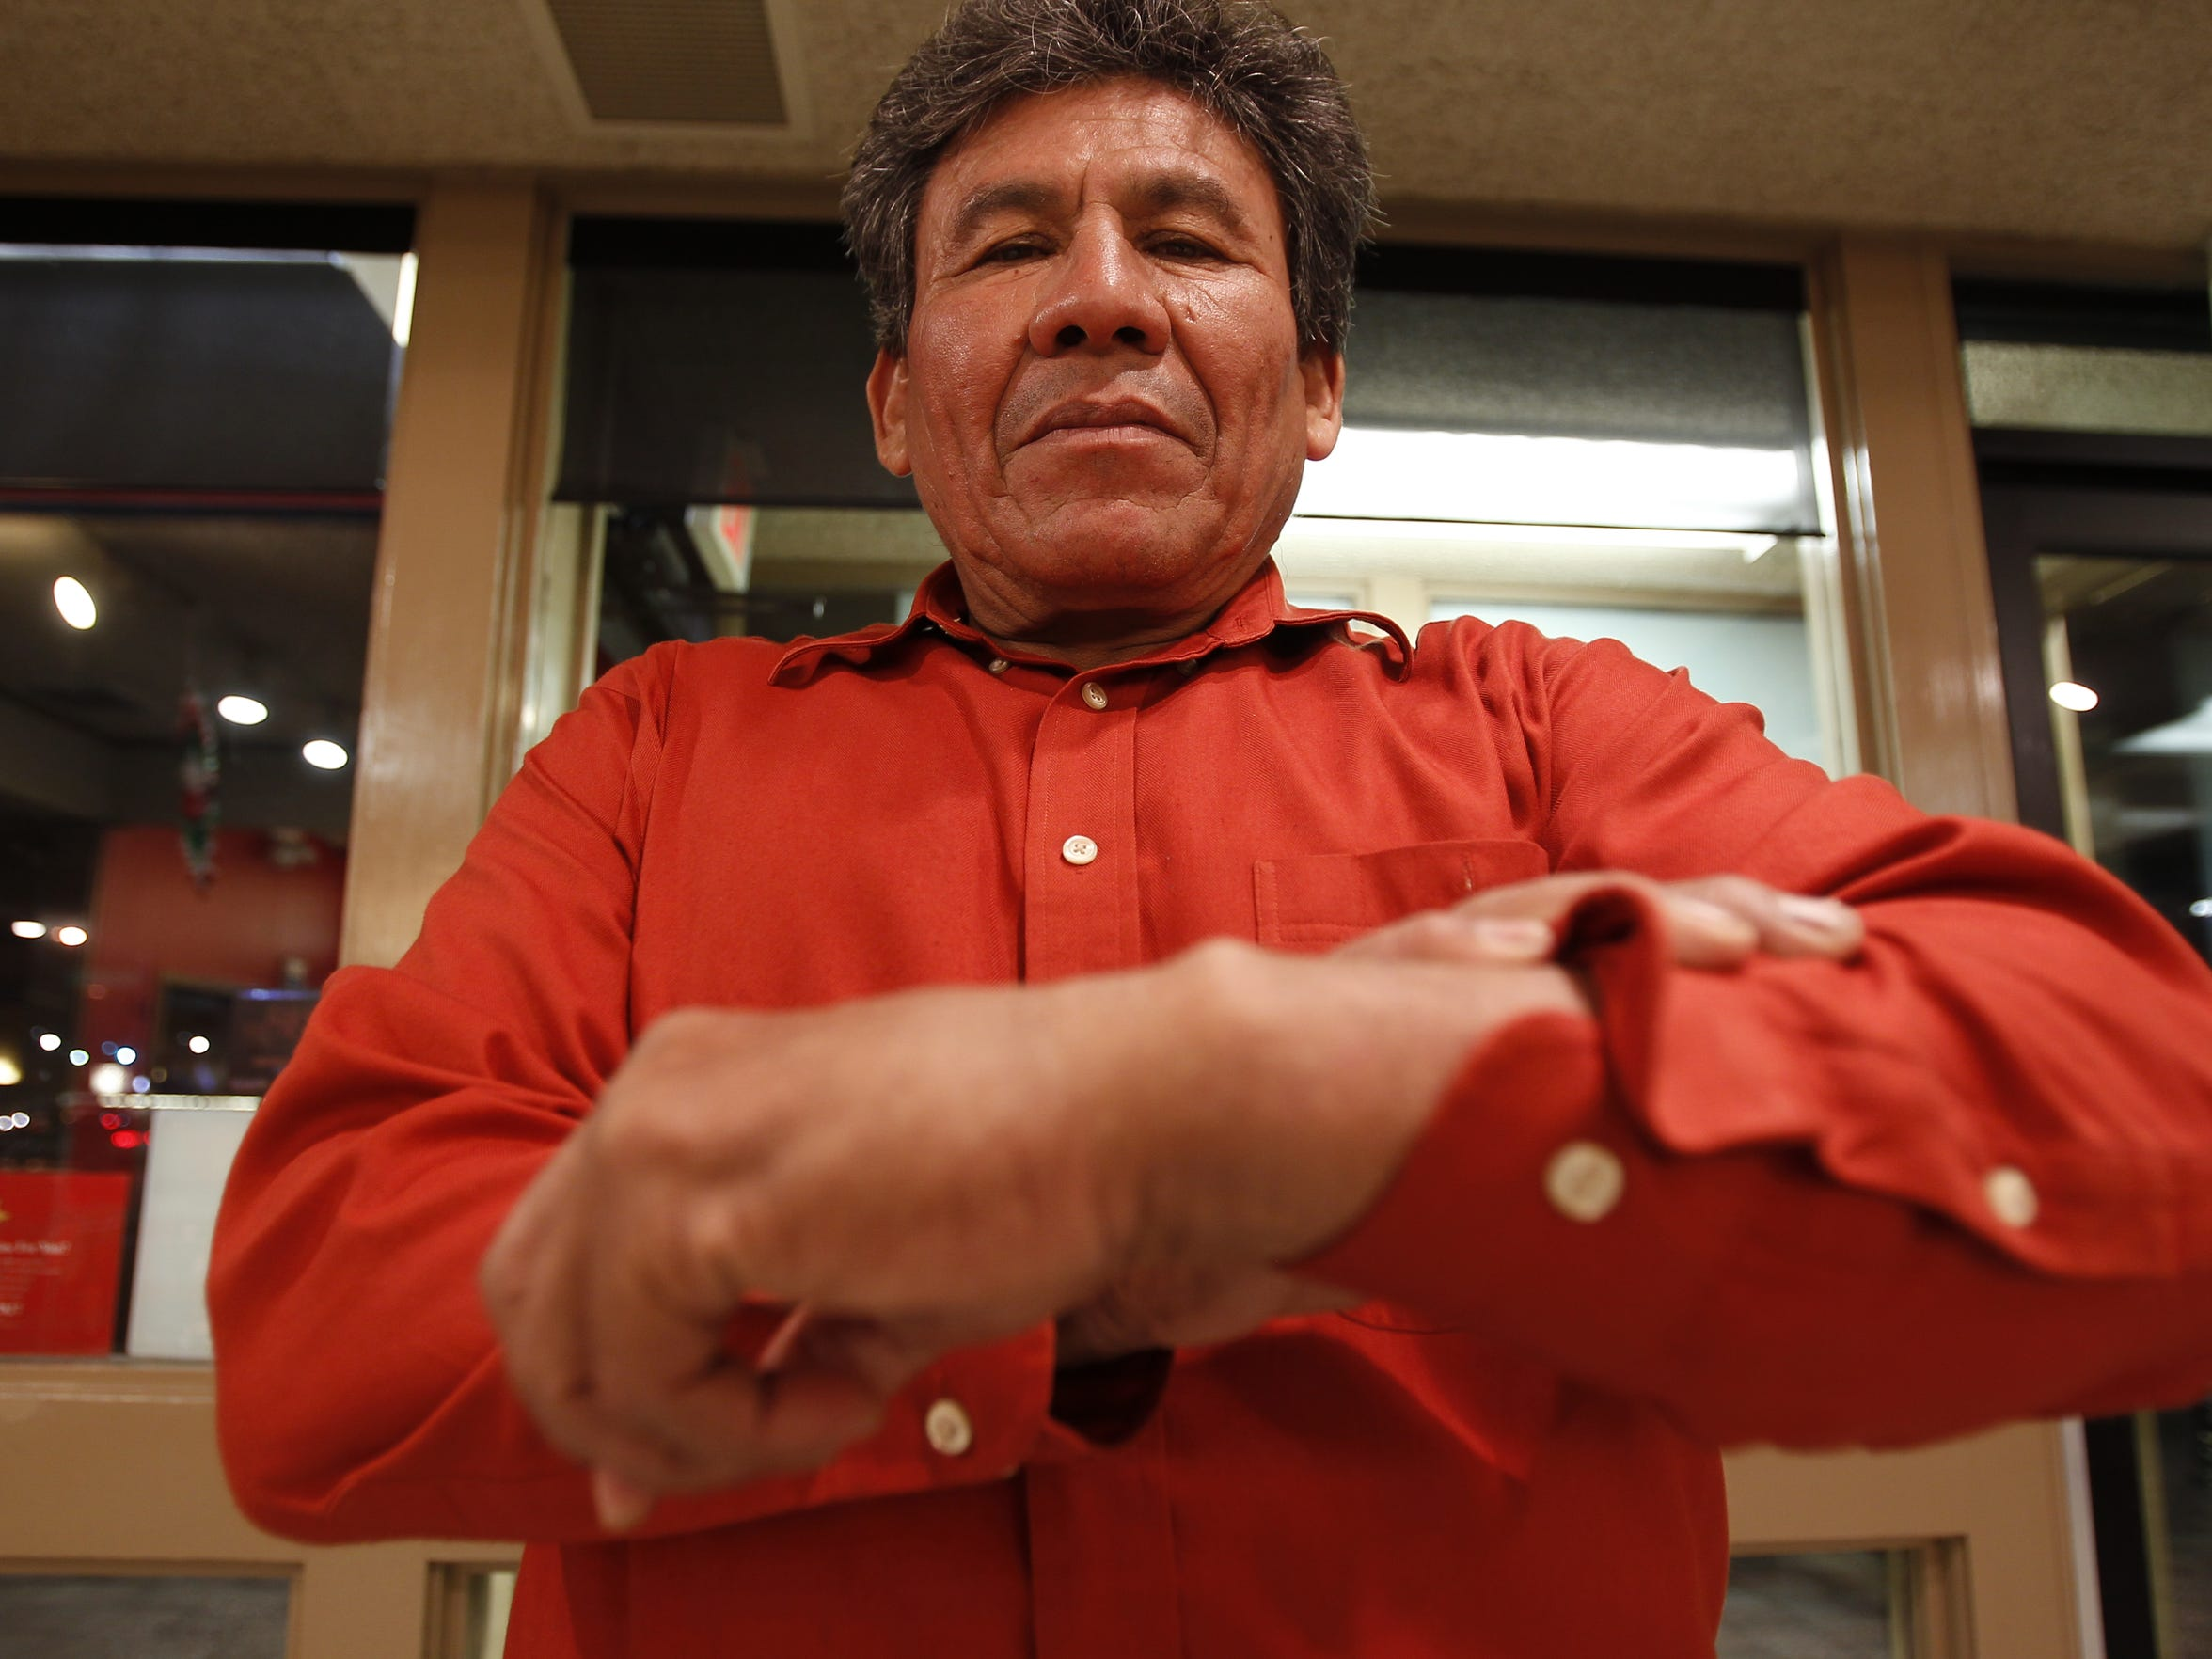 Manuel de Jesús Ortega Melendres shows the deformity in his right wrist, which was caused from an injury in his youth. It was made worse after being handcuffed by a Maricopa County Sheriff's Office deputy in September 2007.